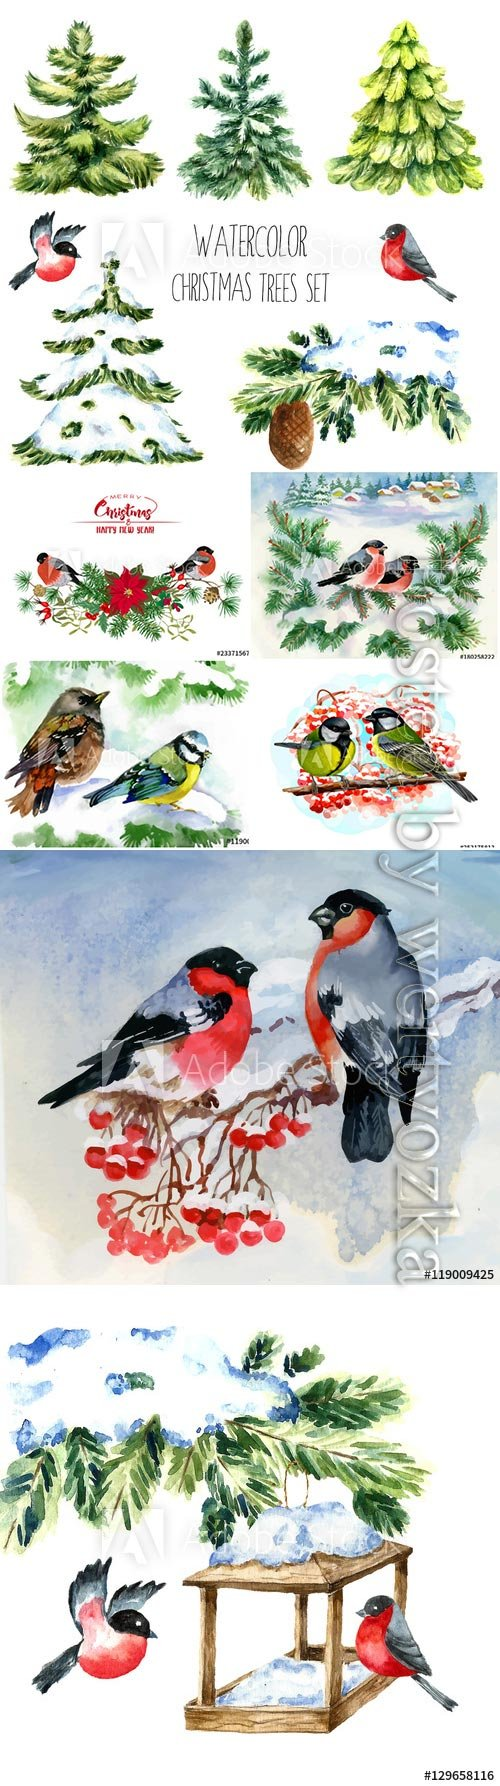 Watercolor christmas trees, birds on snowy tree branch